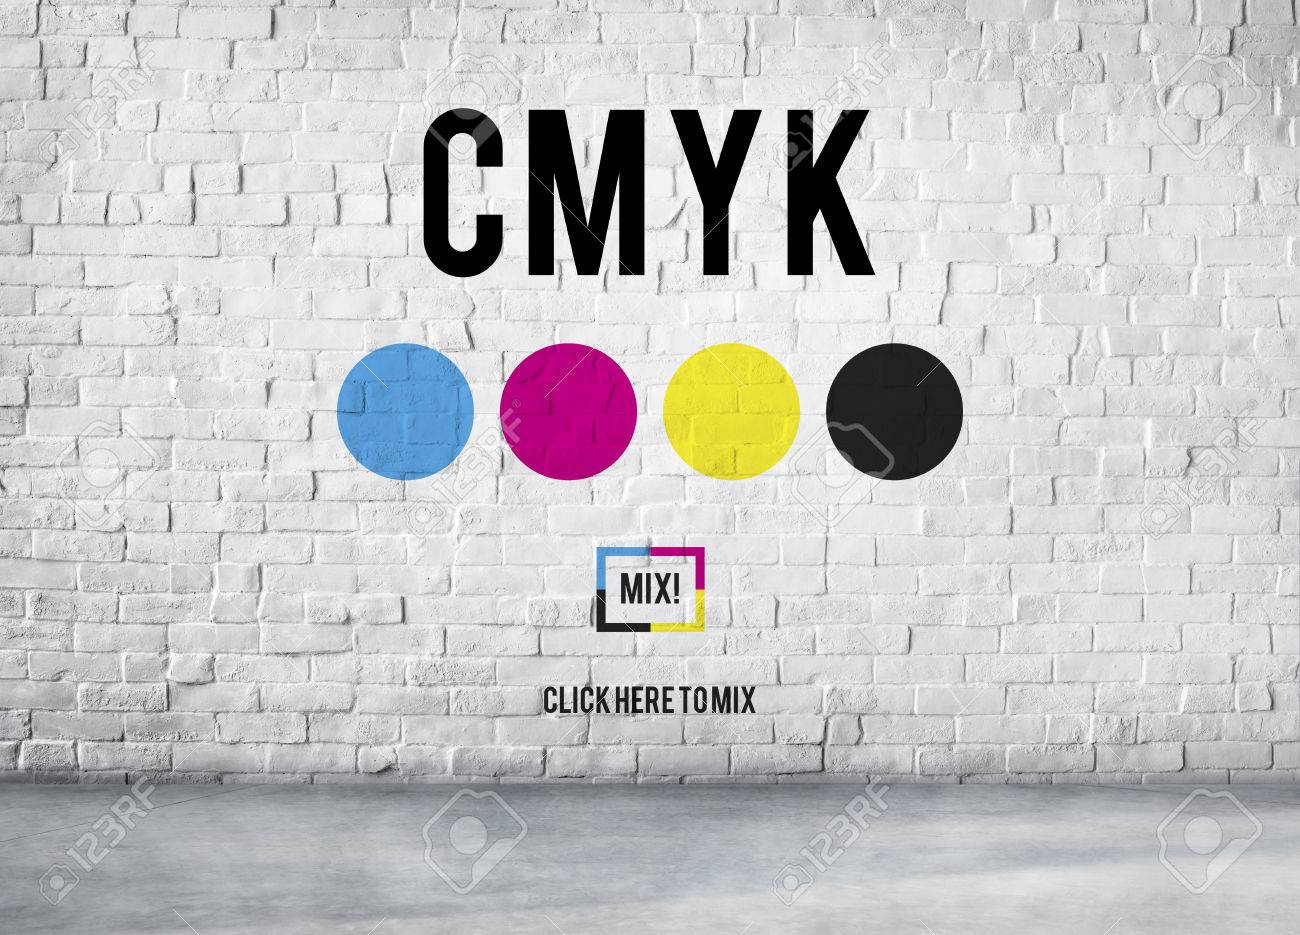 cmyk color printing ink color model concept stock photo picture